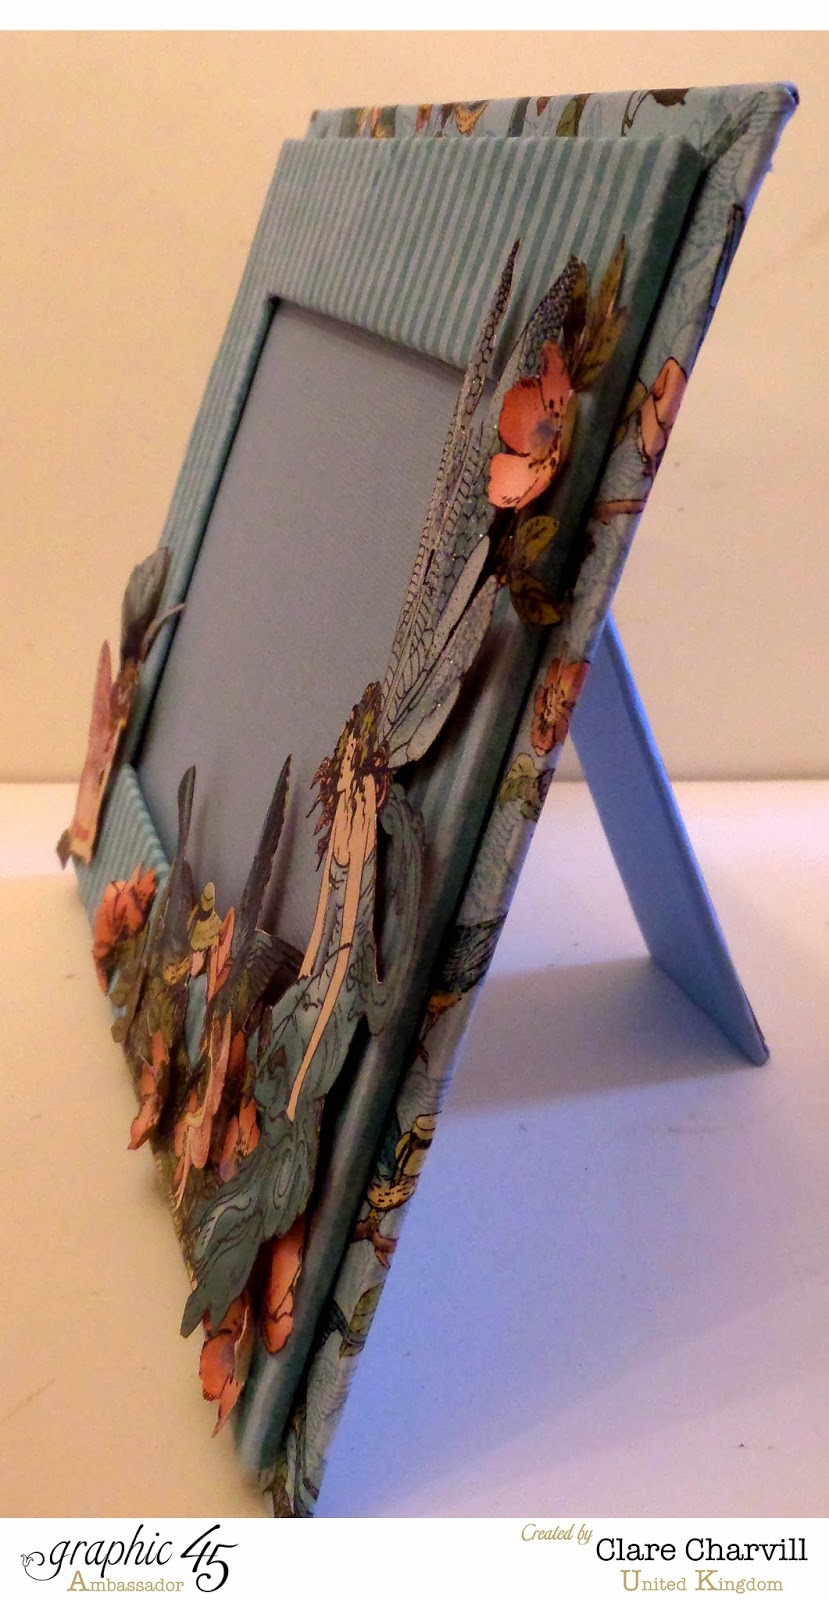 Once Upon a Springtime Single Picture Frame  4 Clare Charvill Graphic 45